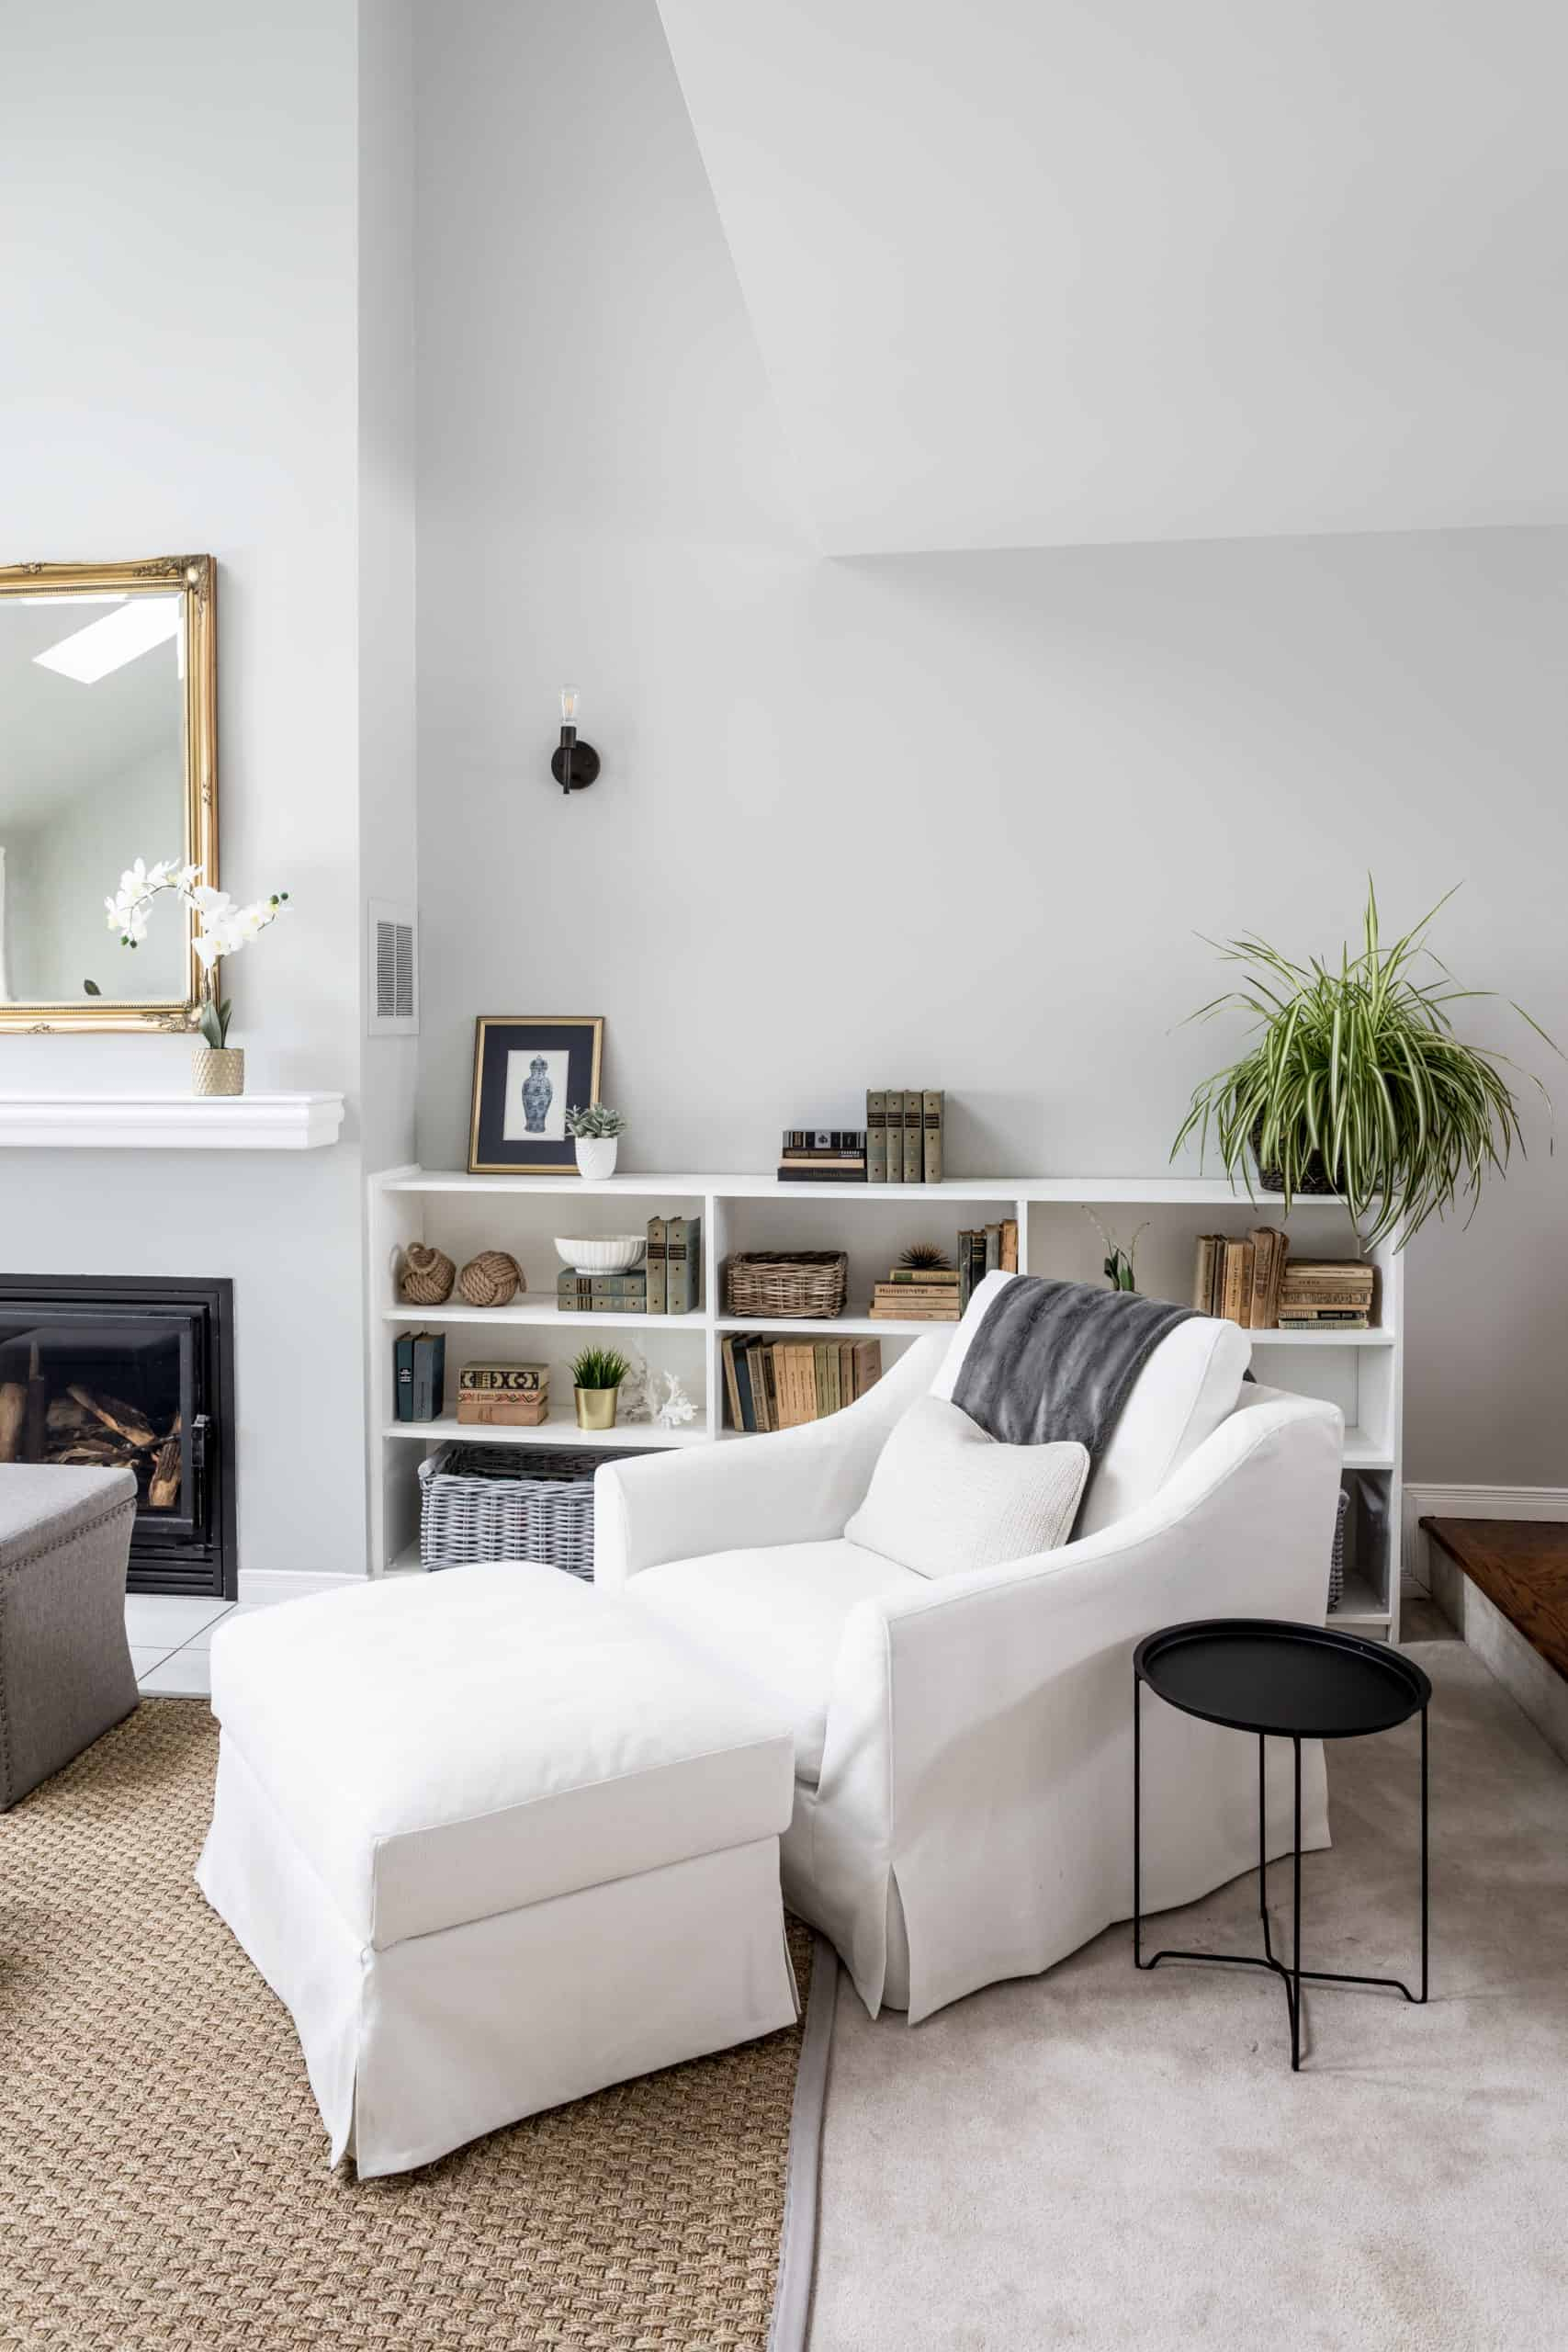 Bright white chair with an ottoman next to it